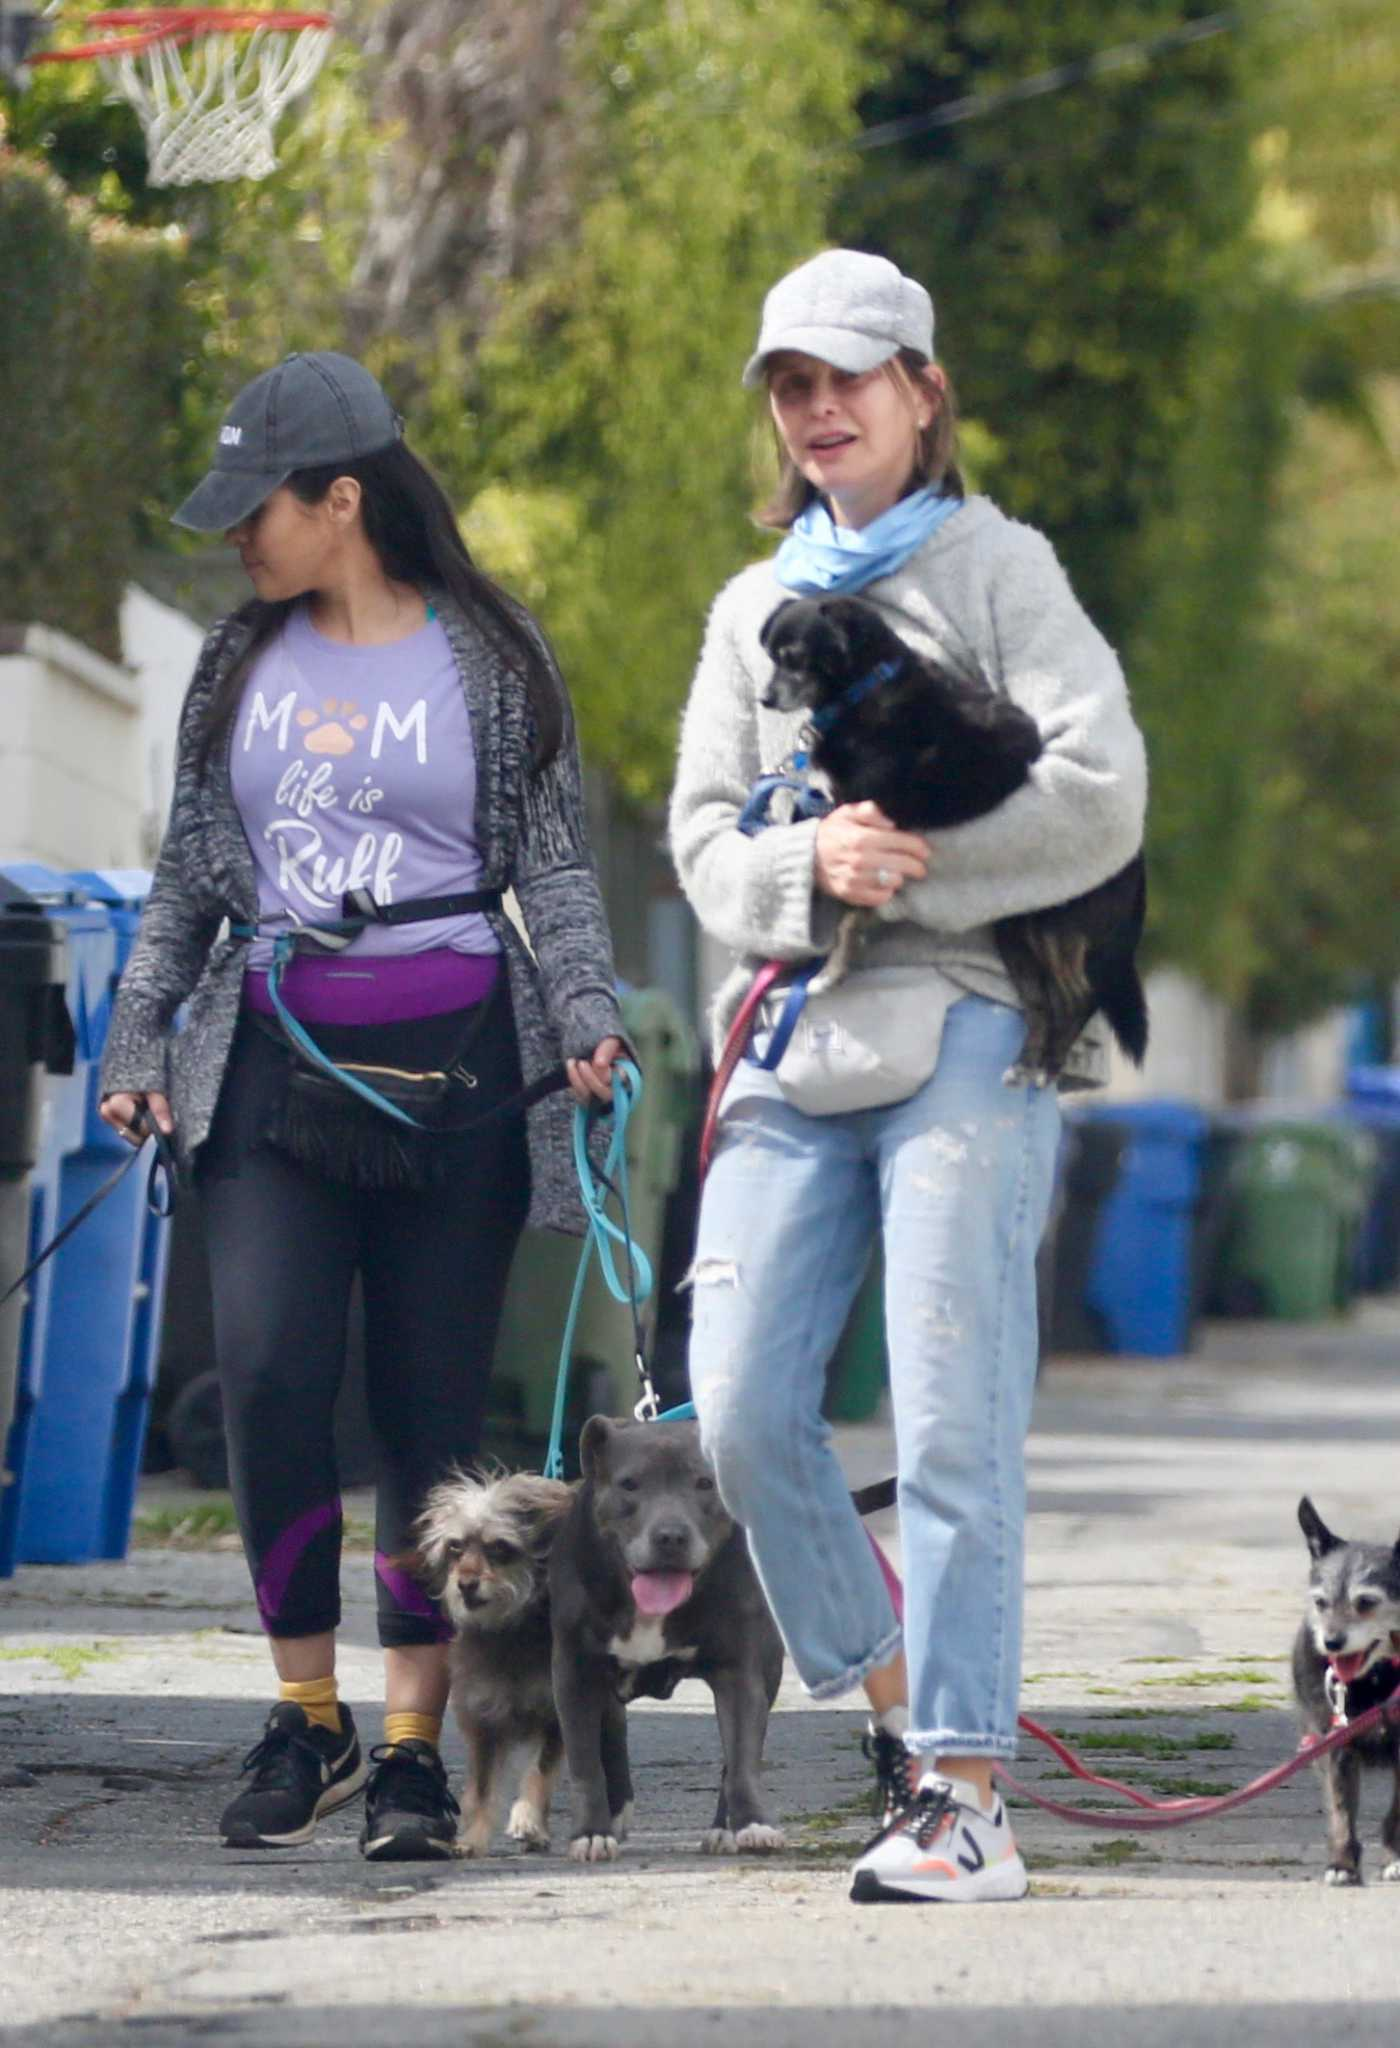 Calista Flockhart in a Gray Cap Walks Her Dogs in Los Angeles 04/03/2020